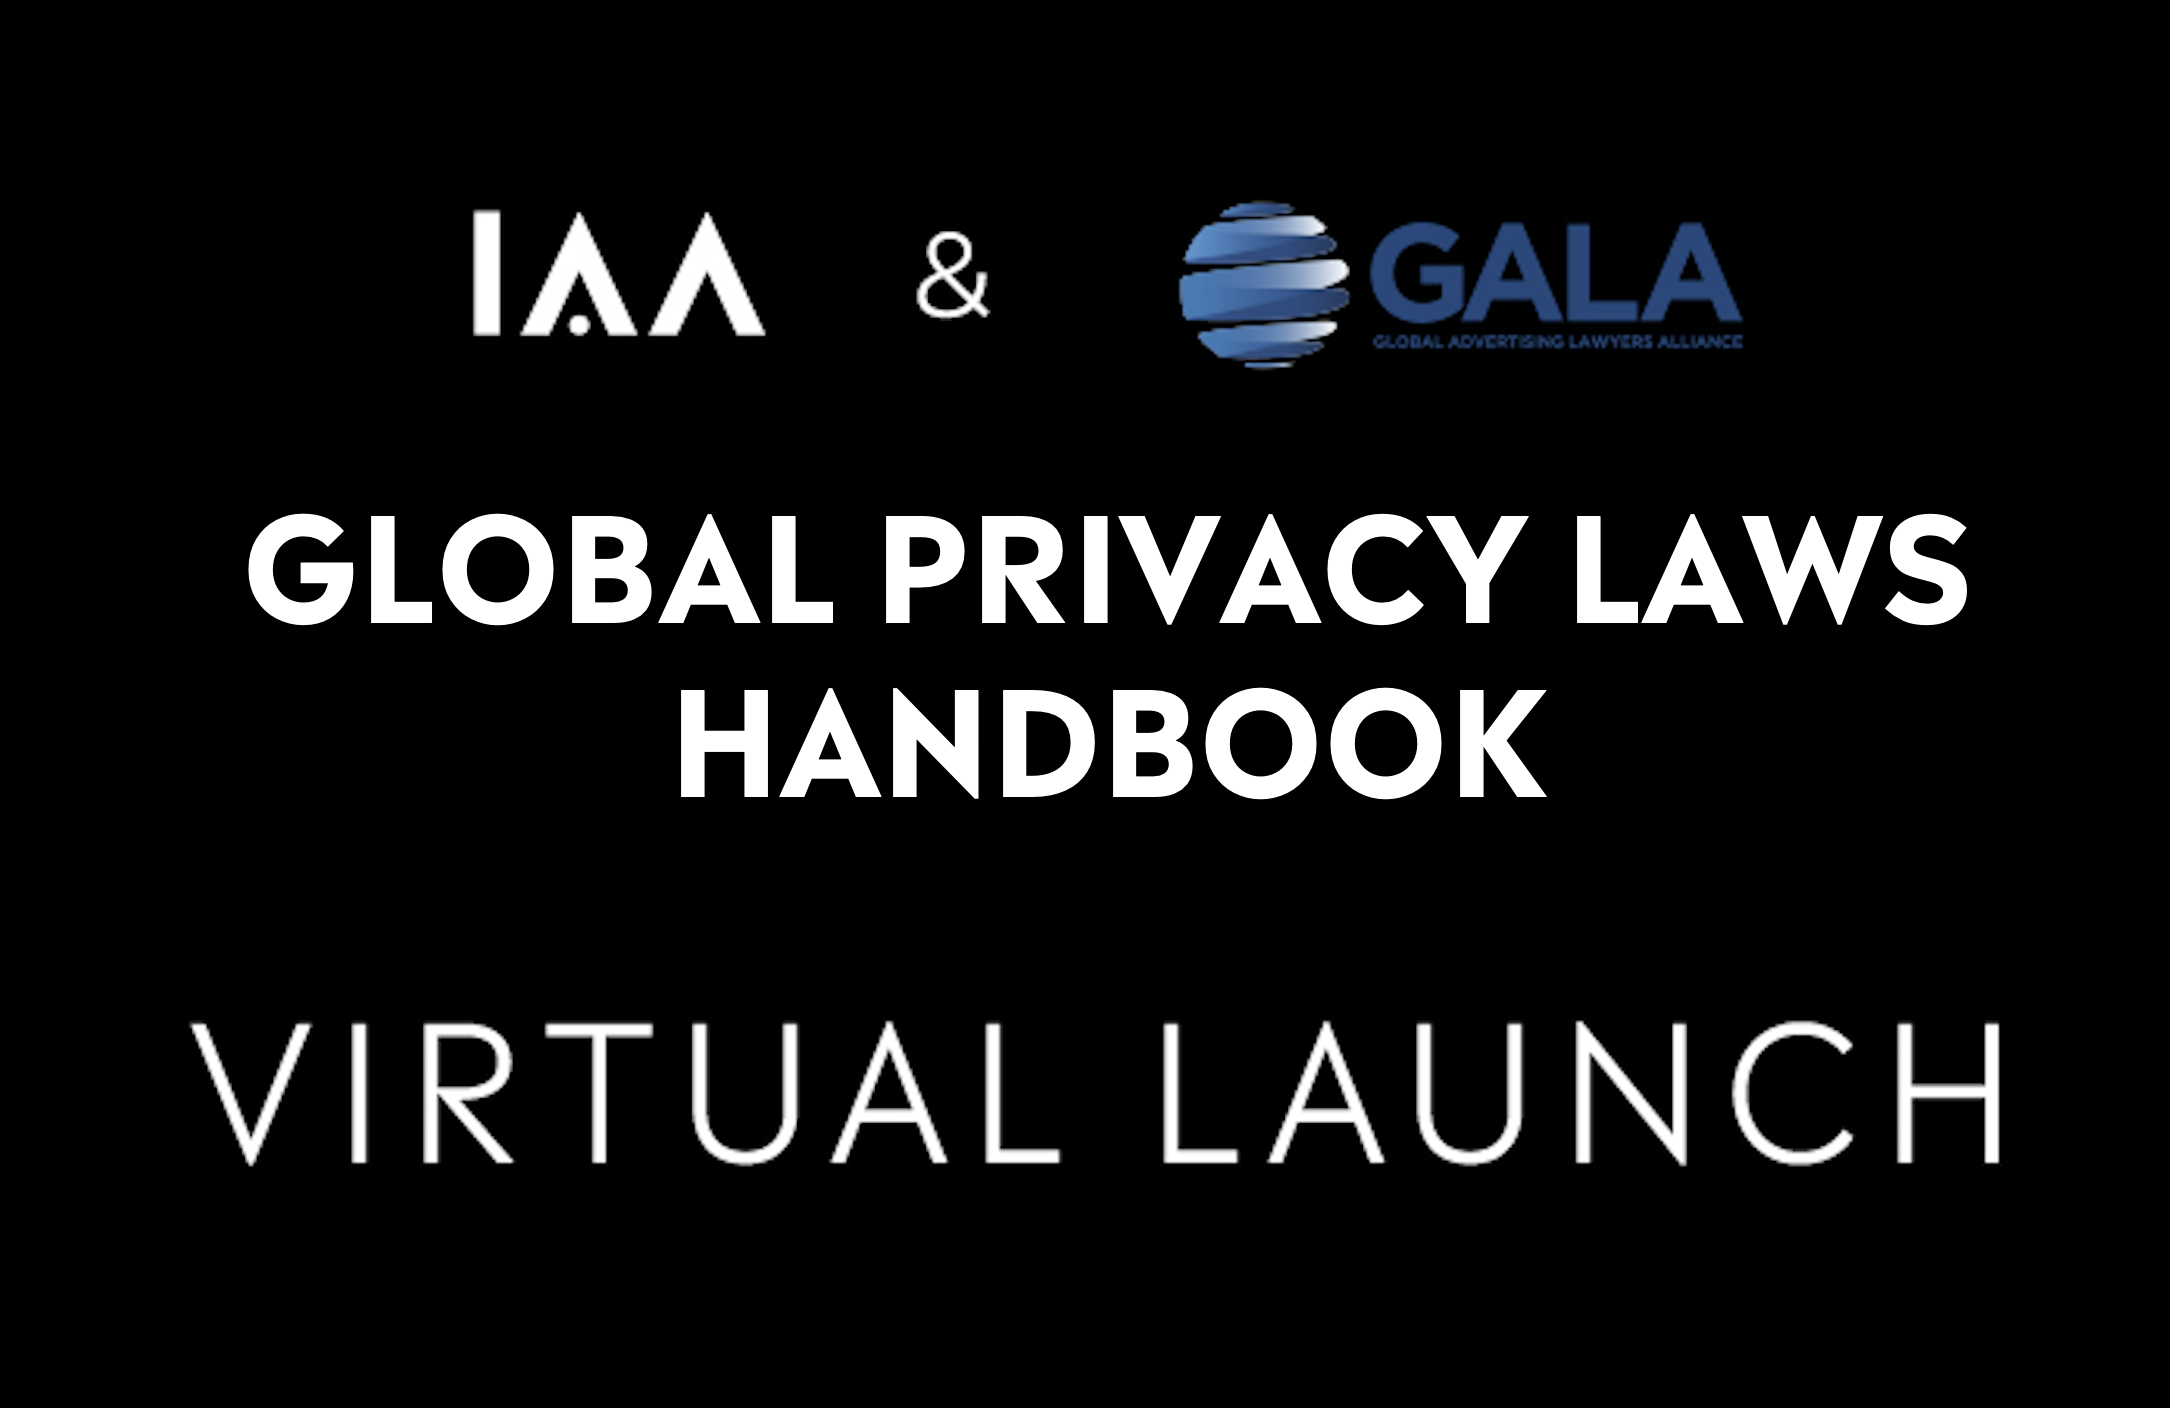 IAA and GALA launch first ever Global Privacy Laws Handbook